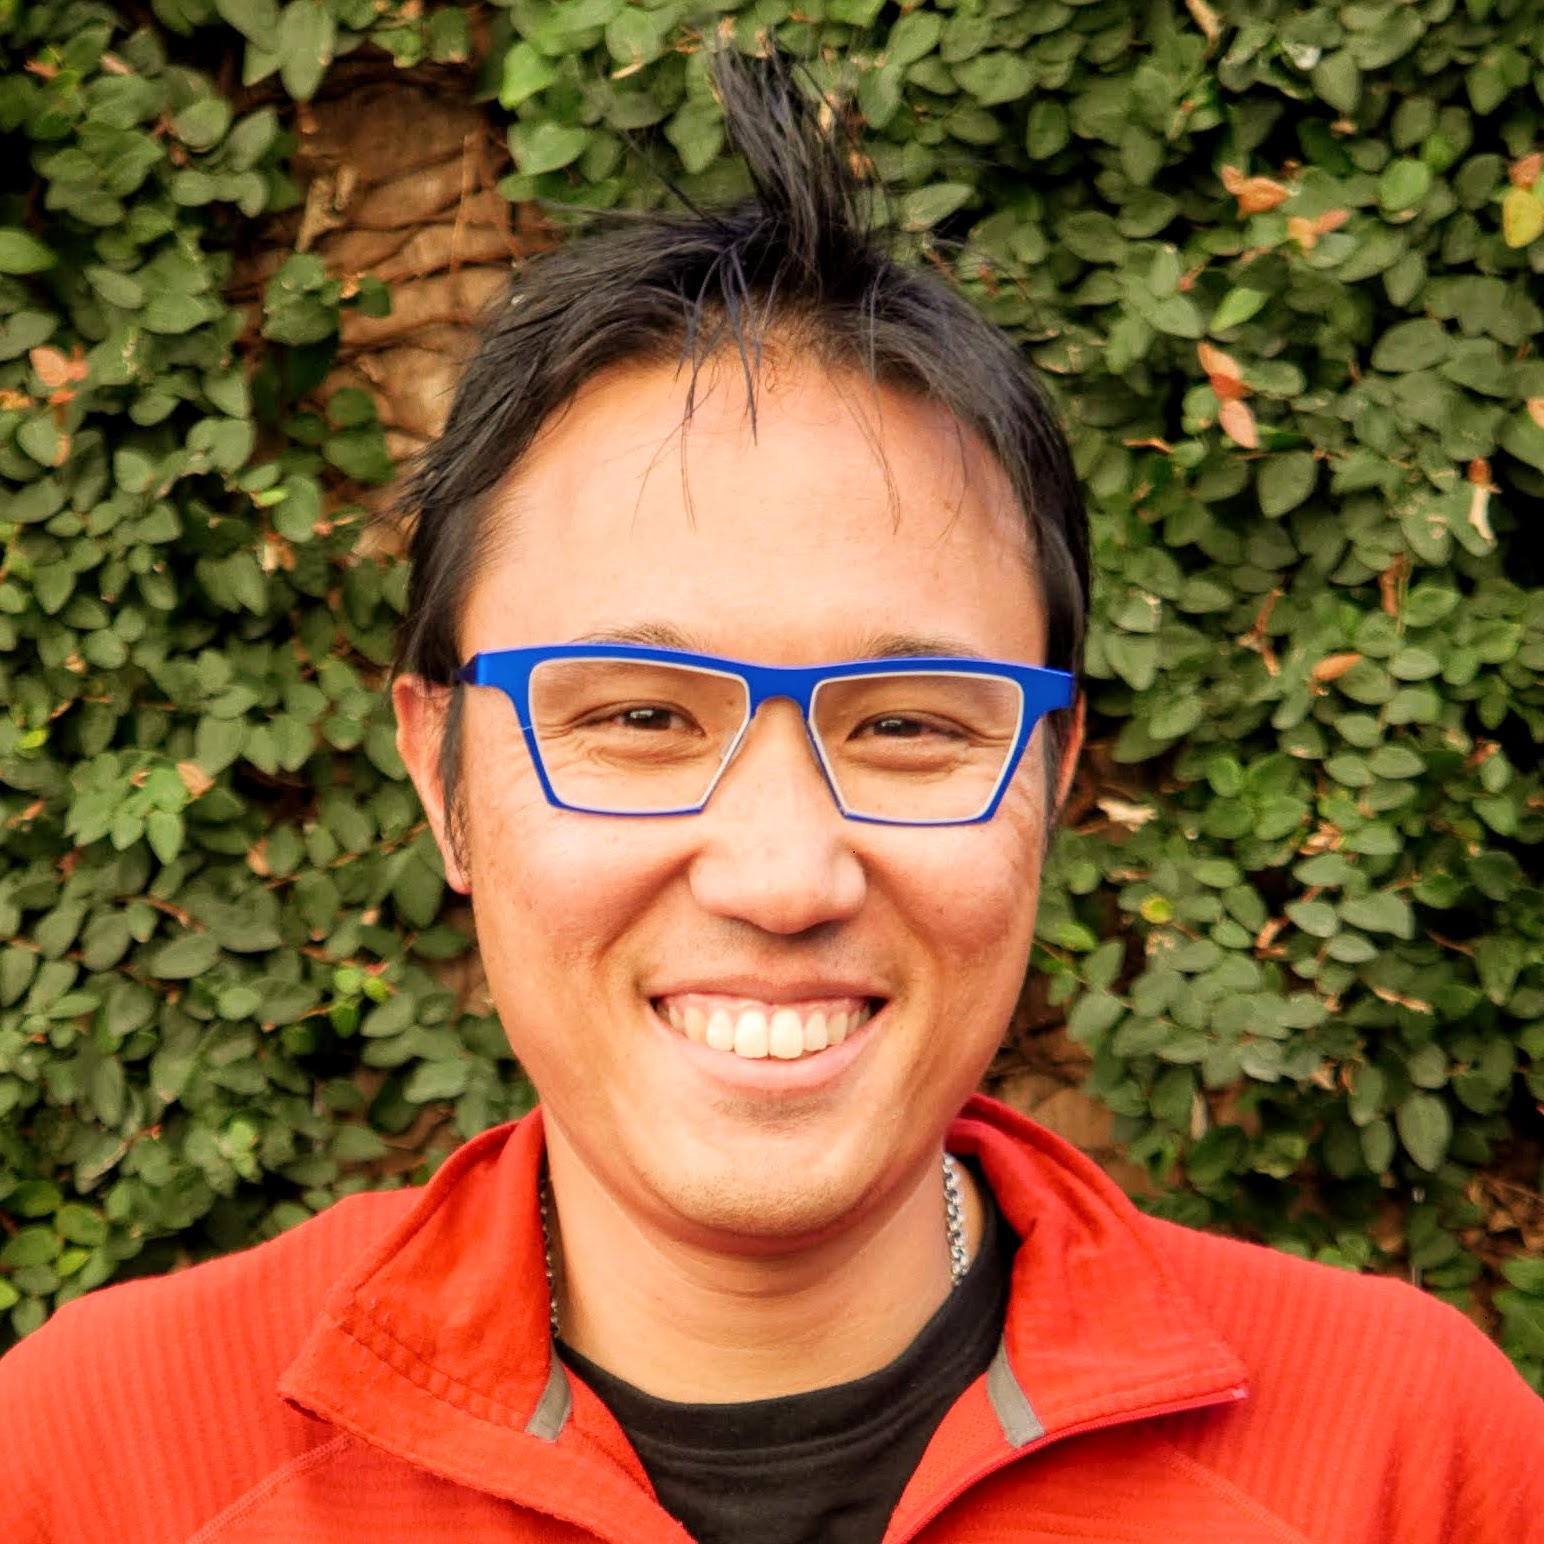 Mark 'Chai' Chaimungkalanont - Chai joined Atlassian in 2004 when it was a 15 person startup and helped build the foundational pieces of Jira you know and love today. Chai's passion for food knows no bounds. There are few animals who have escaped his palate.